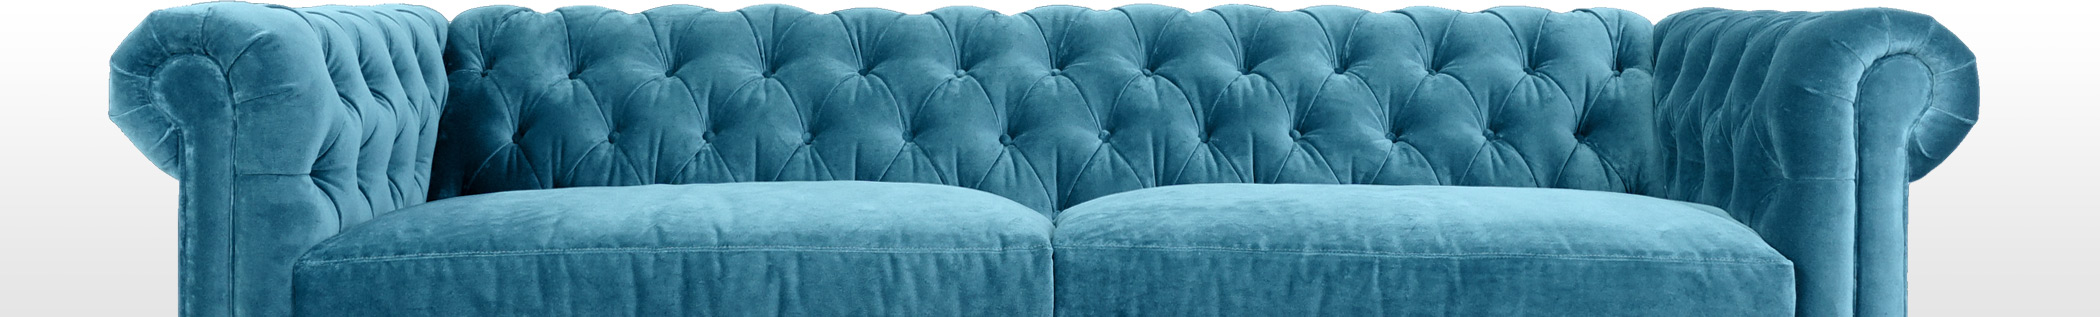 Chesterfields Sofa Armchairs Sectionals Ottomans Made